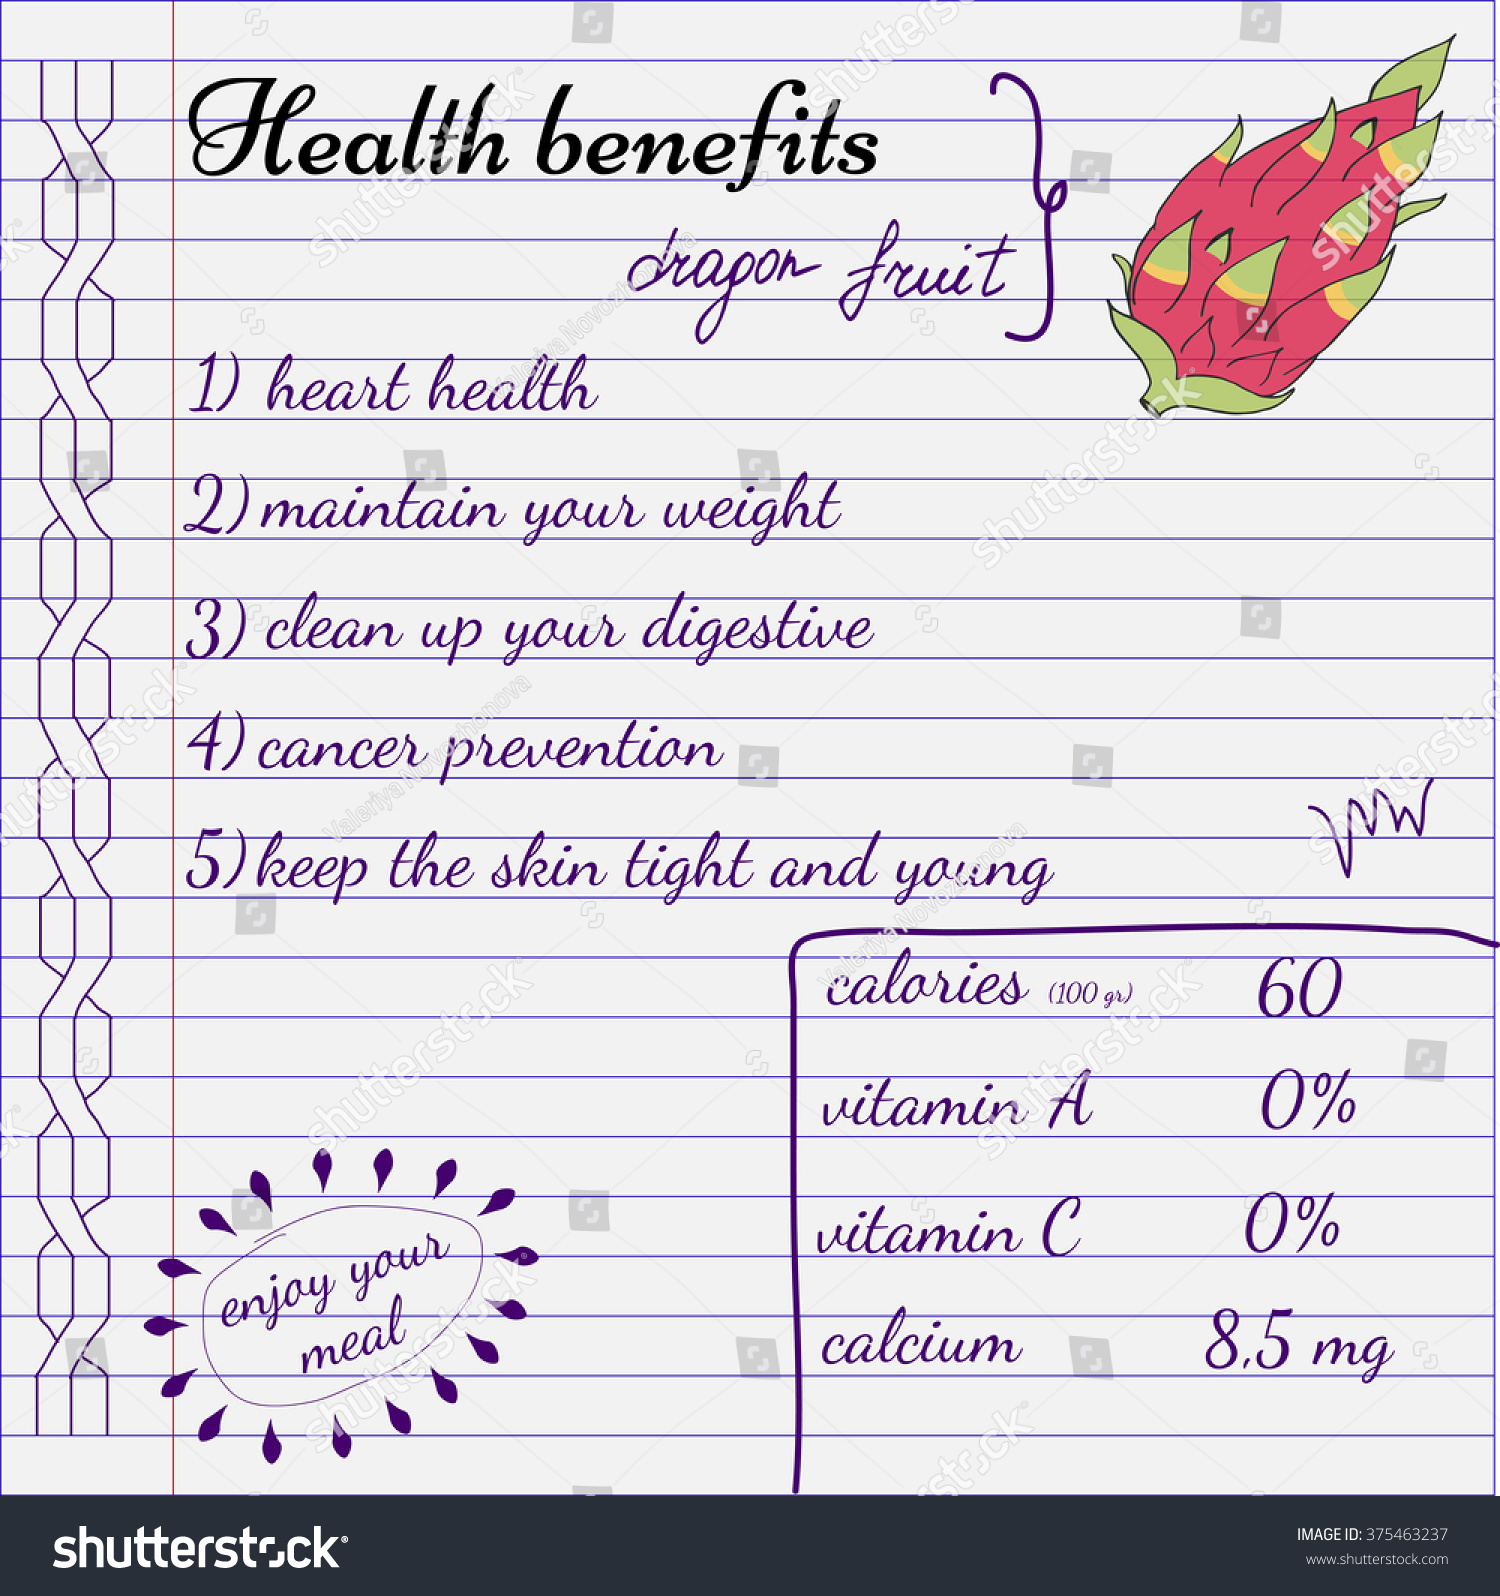 Dragon Fruit Nutrition Facts And Benefits - Best Image Atlproms.com